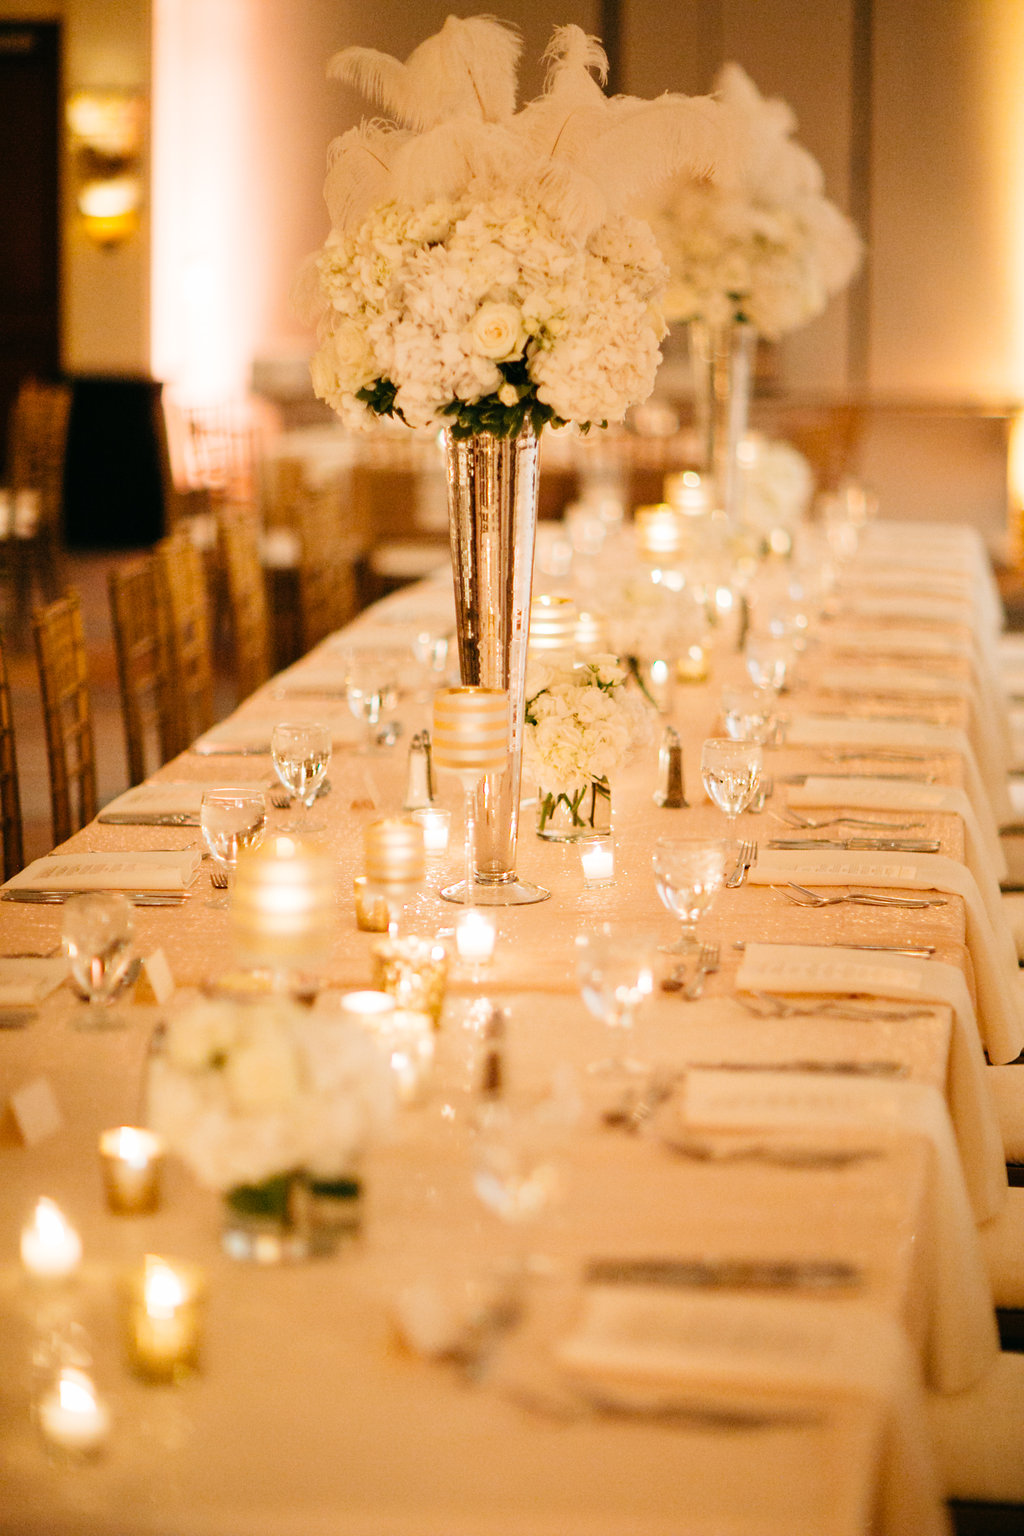 Omaha Nebraska Hilton Hotel Wedding Guest Table